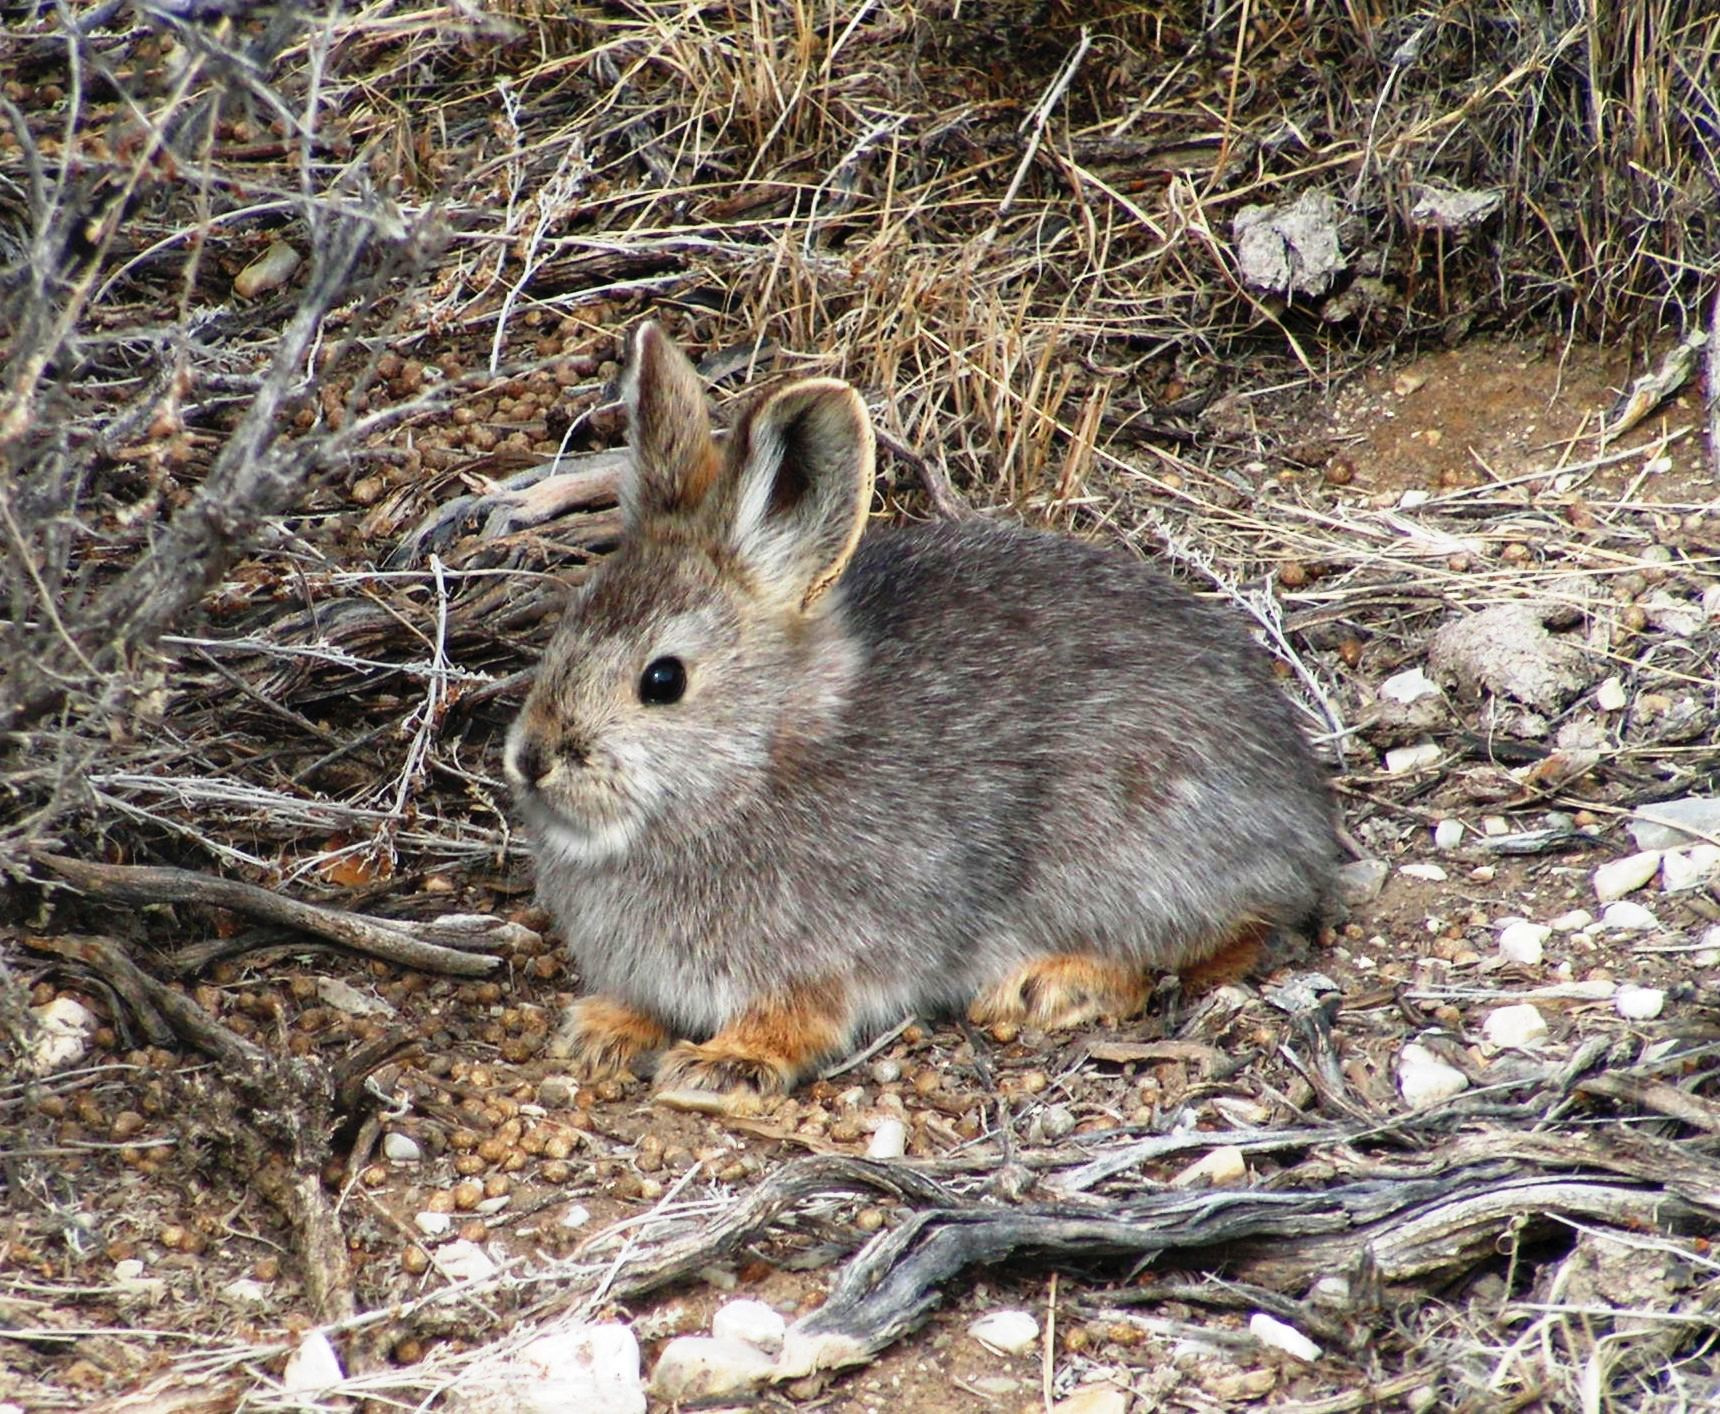 pygmy rabbit in brush May 2006